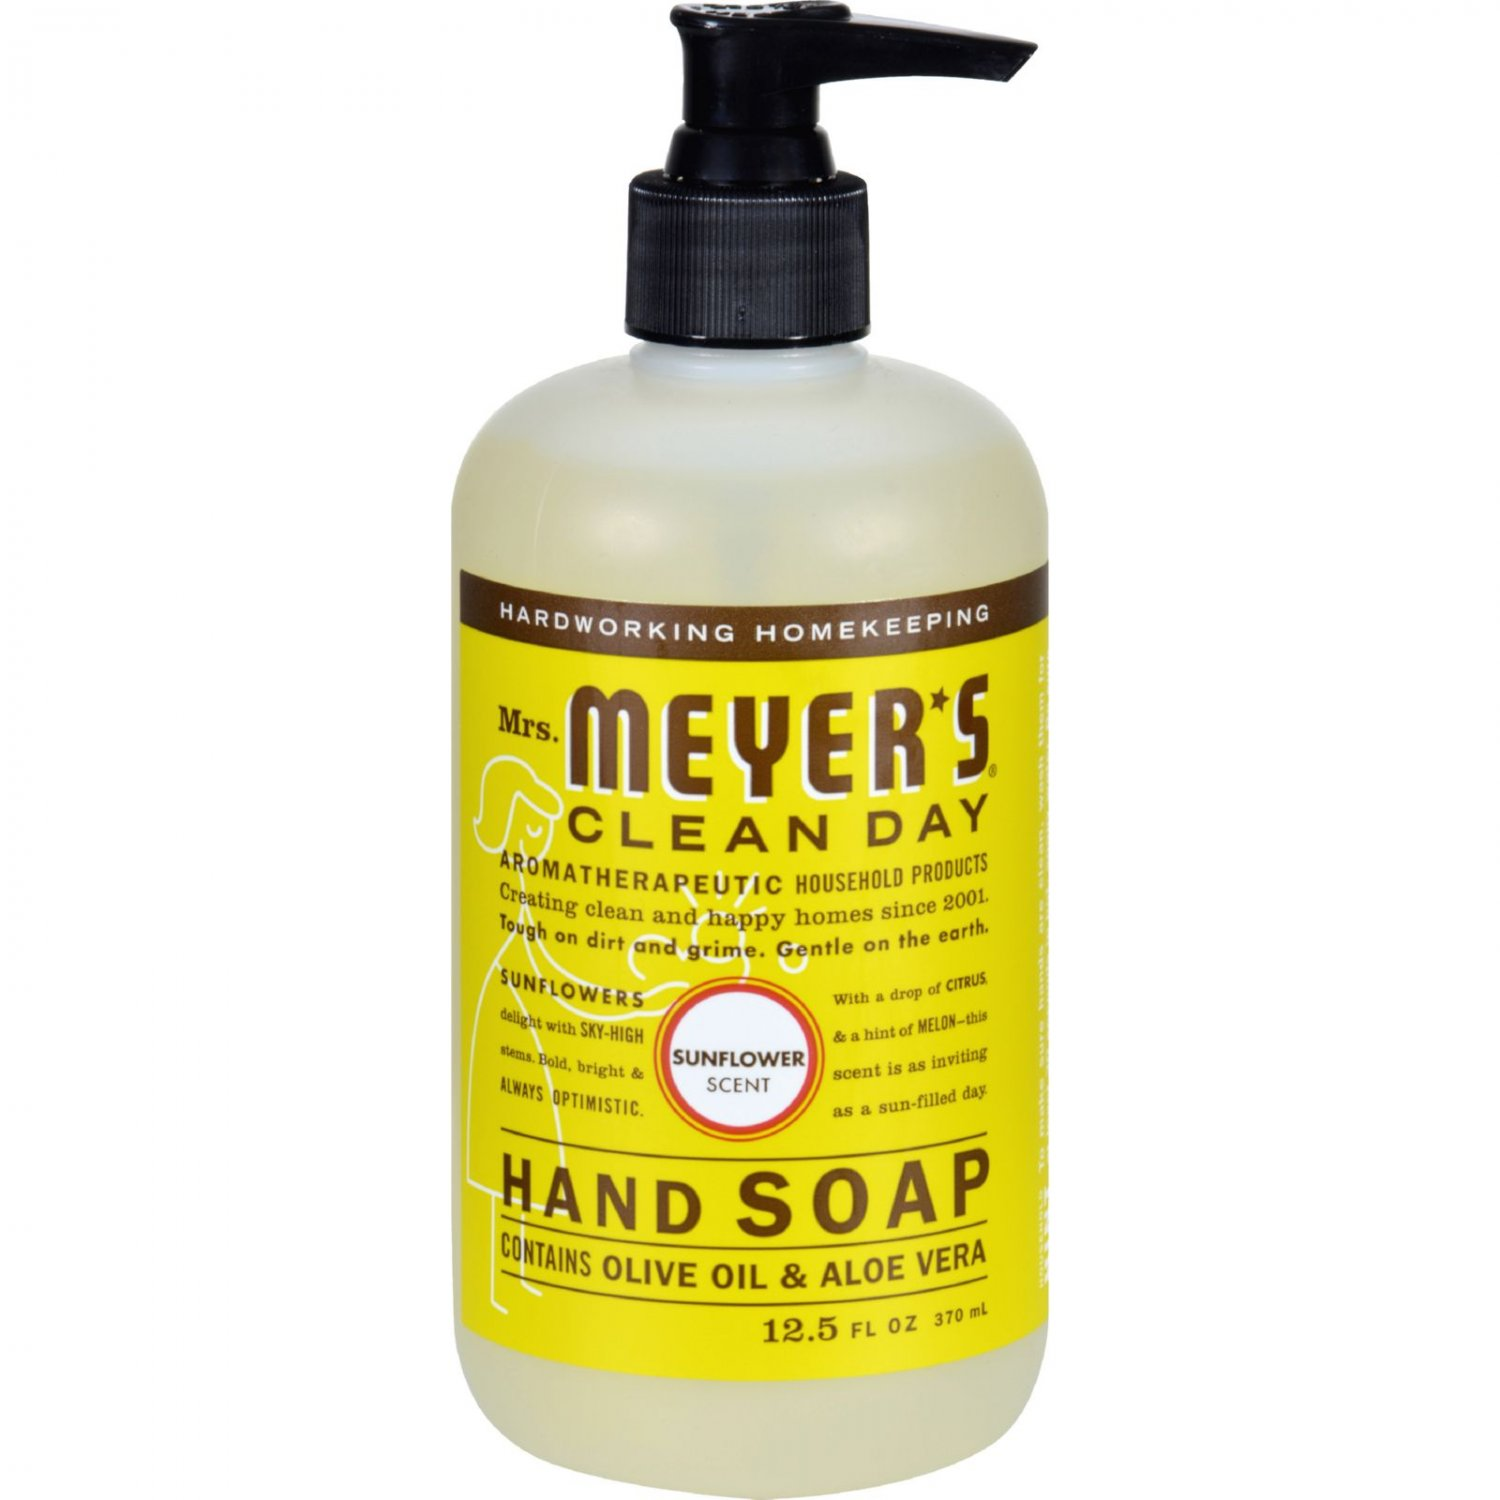 Mrs. Meyer's Liquid Hand Soap - Sunflower - Case of 6 - 12.5 fl oz